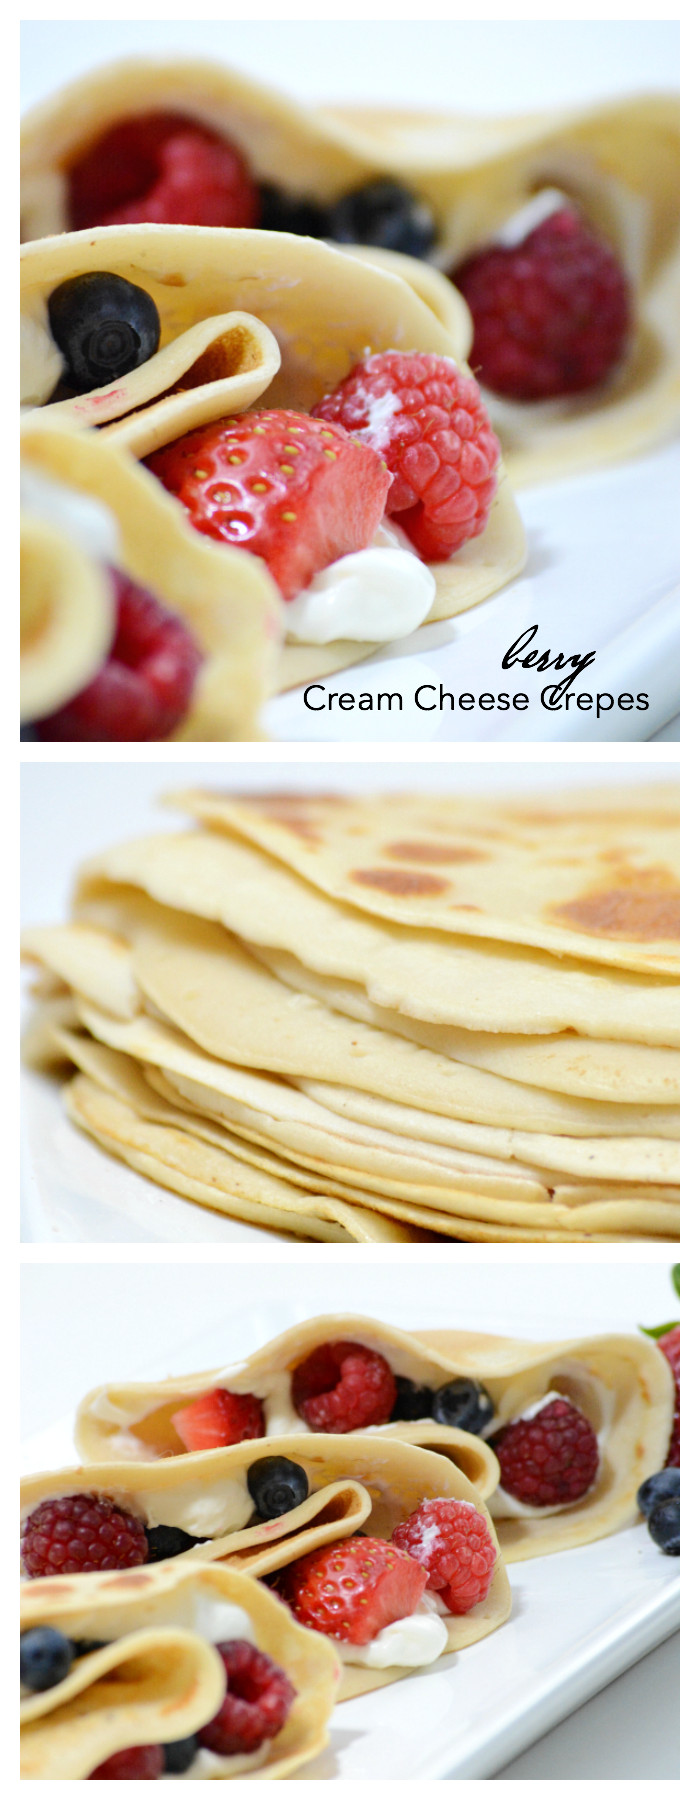 Breakfast Crepes Recipe  Berry Cream Cheese Crepes The Idea Room